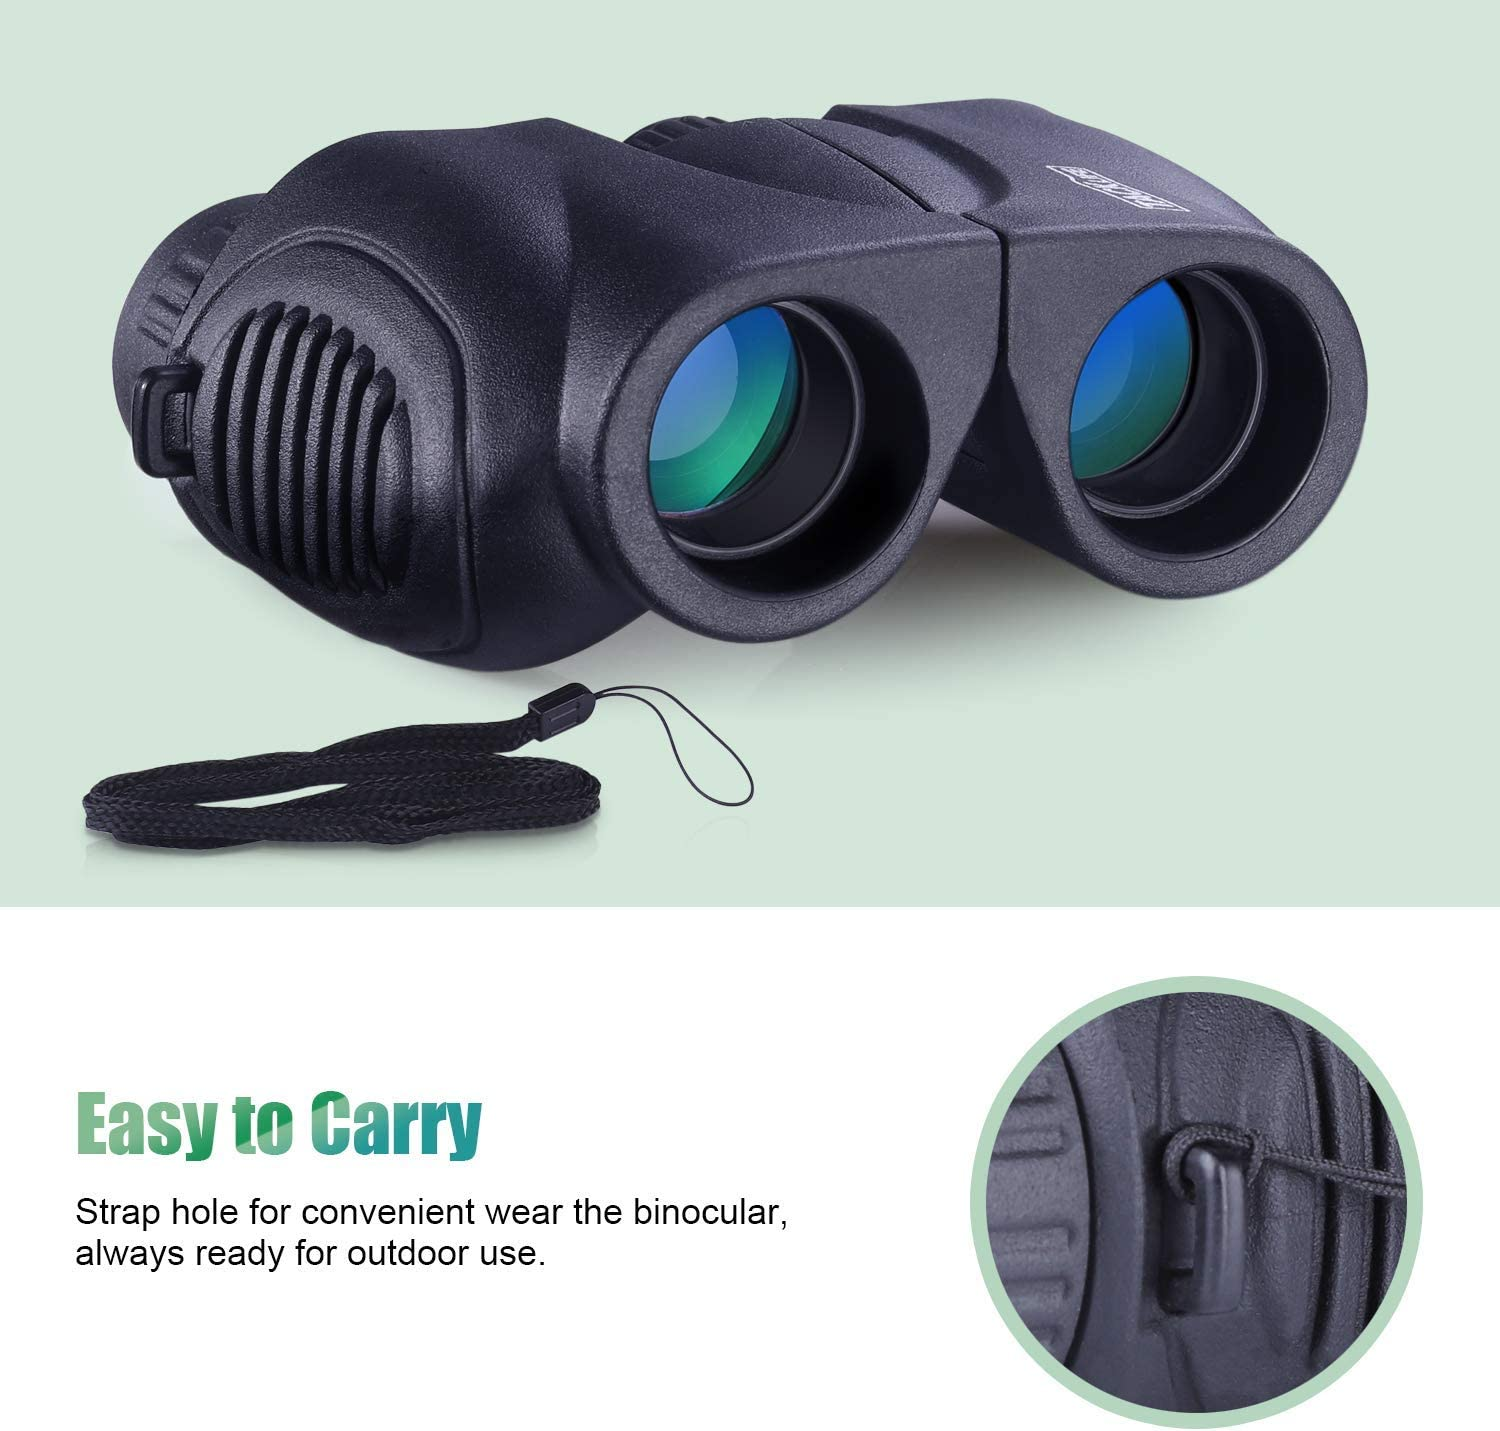 Traveling Bird Watching Hand Strap and Carrying Bag Included MBC03 Compact Folding Telescope 10 x 22 with Eyepiece Dust Cover Dust Proof for Concert Binoculars